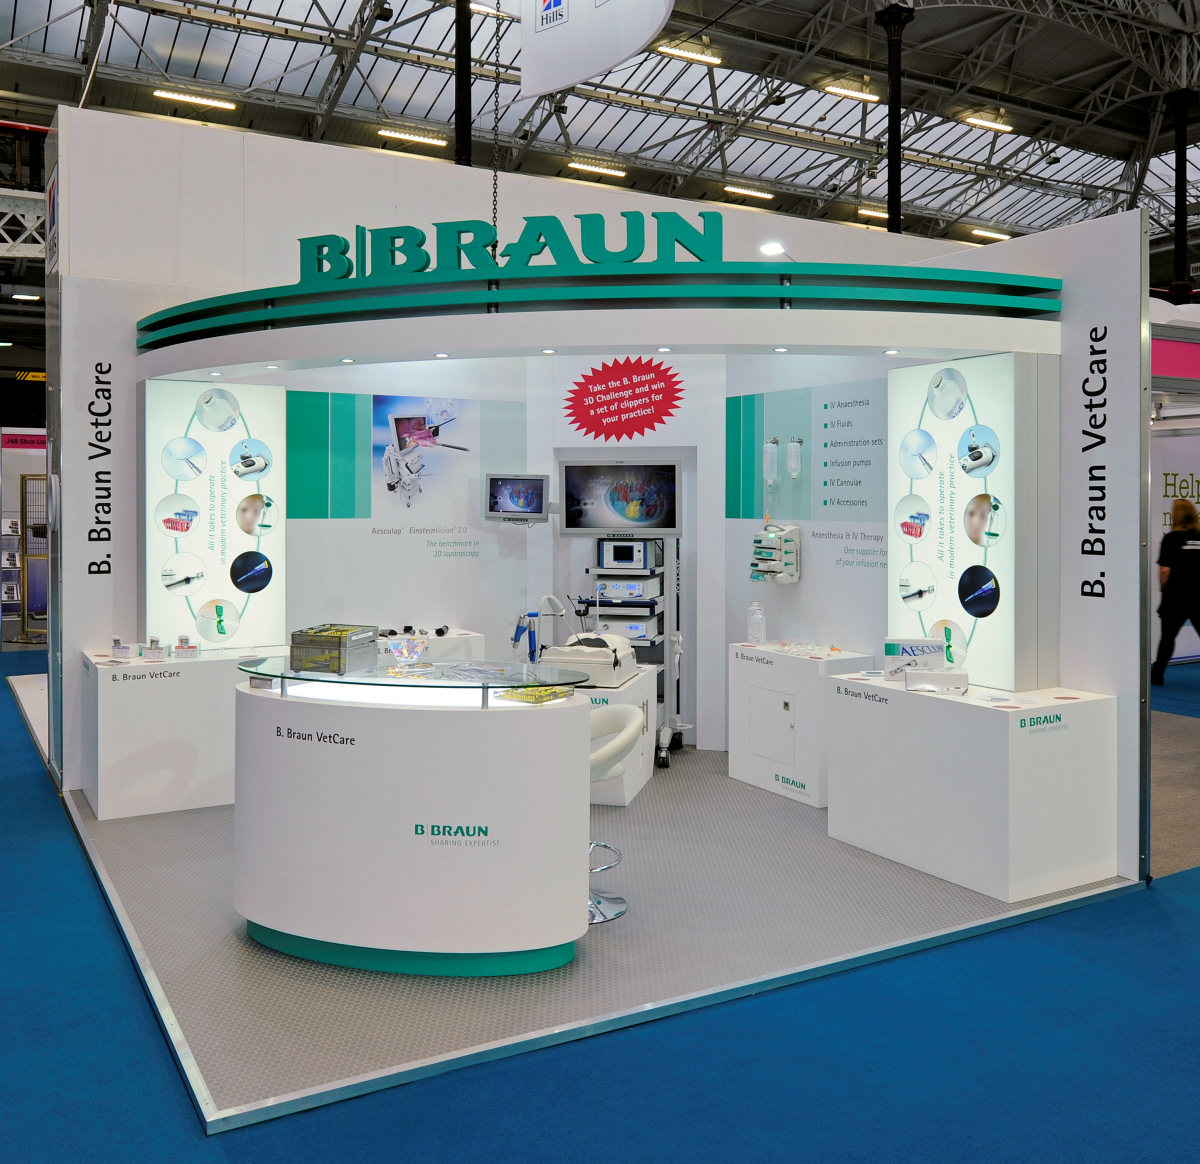 Exhibition Stand Design Sample : Exhibition stand examples motion